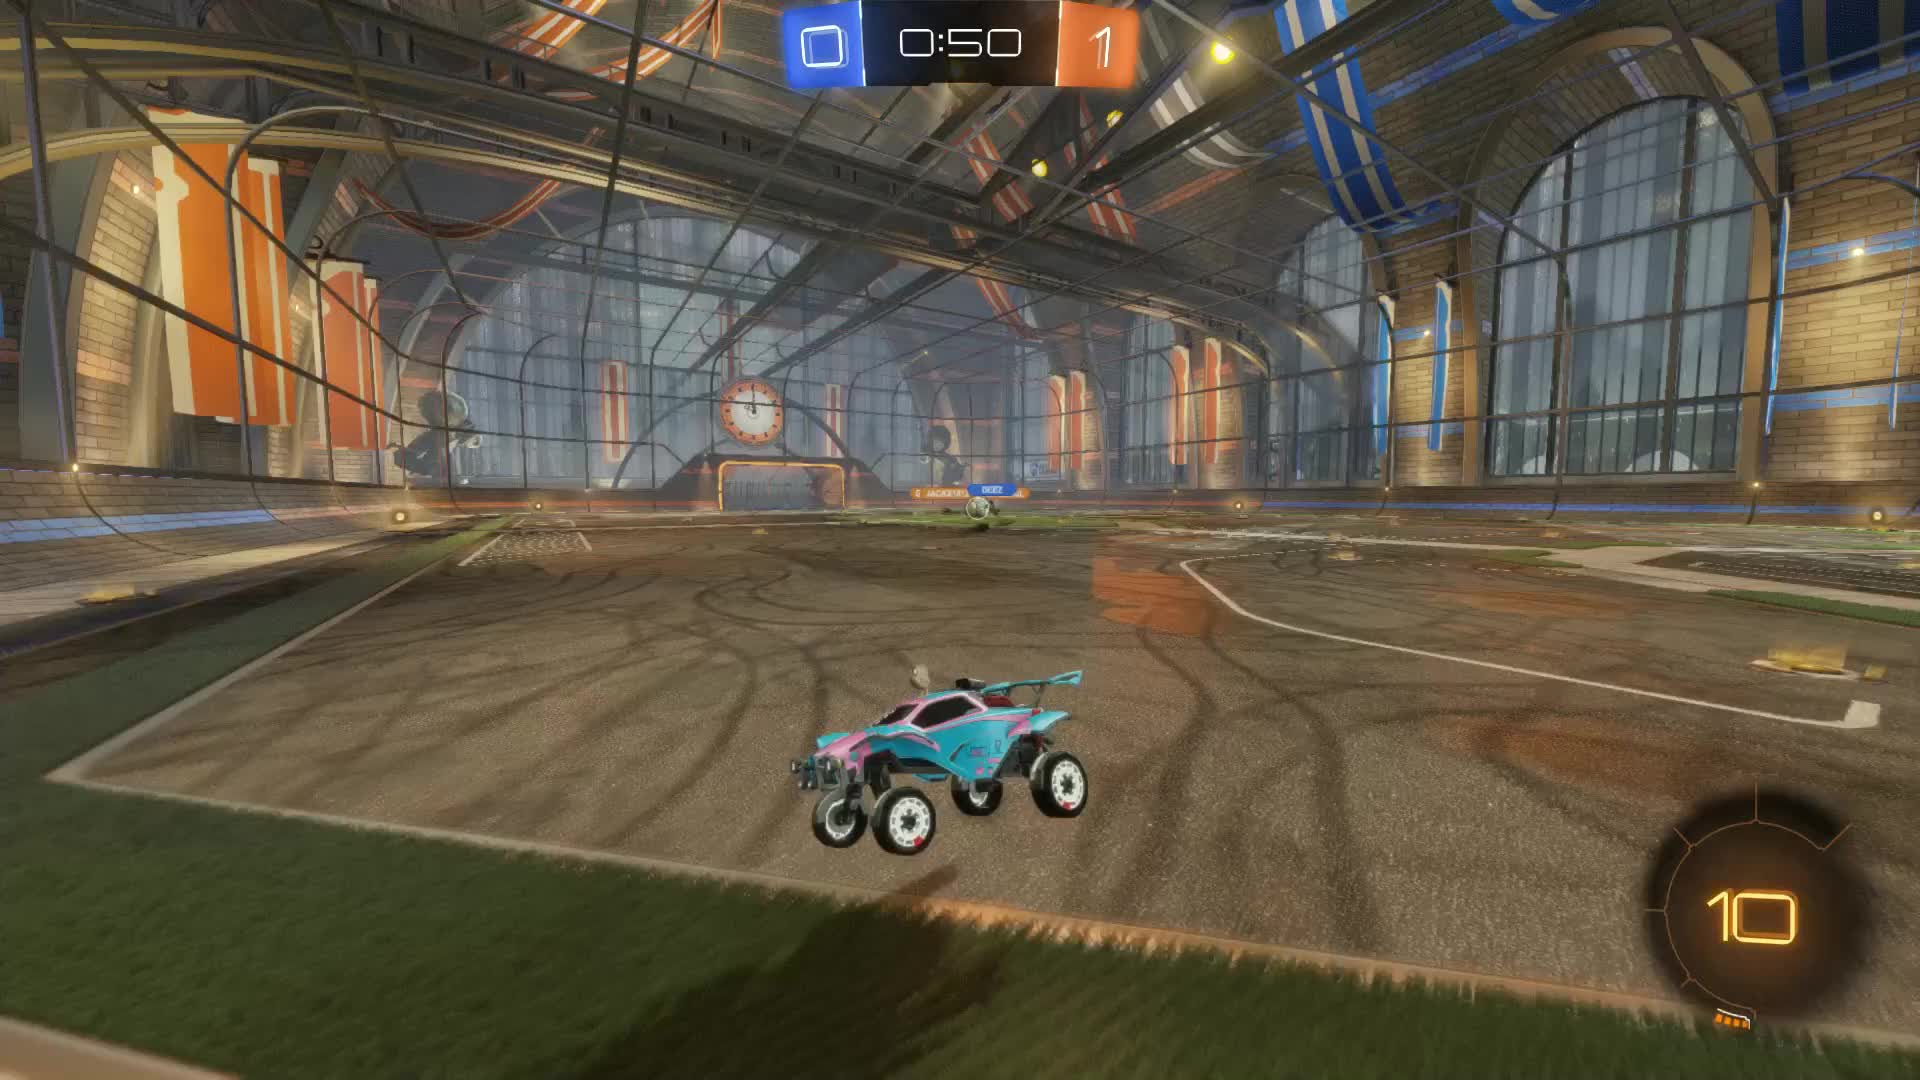 910, Gif Your Game, GifYourGame, Goal, Rocket League, RocketLeague, Goal 2: 910 GIFs